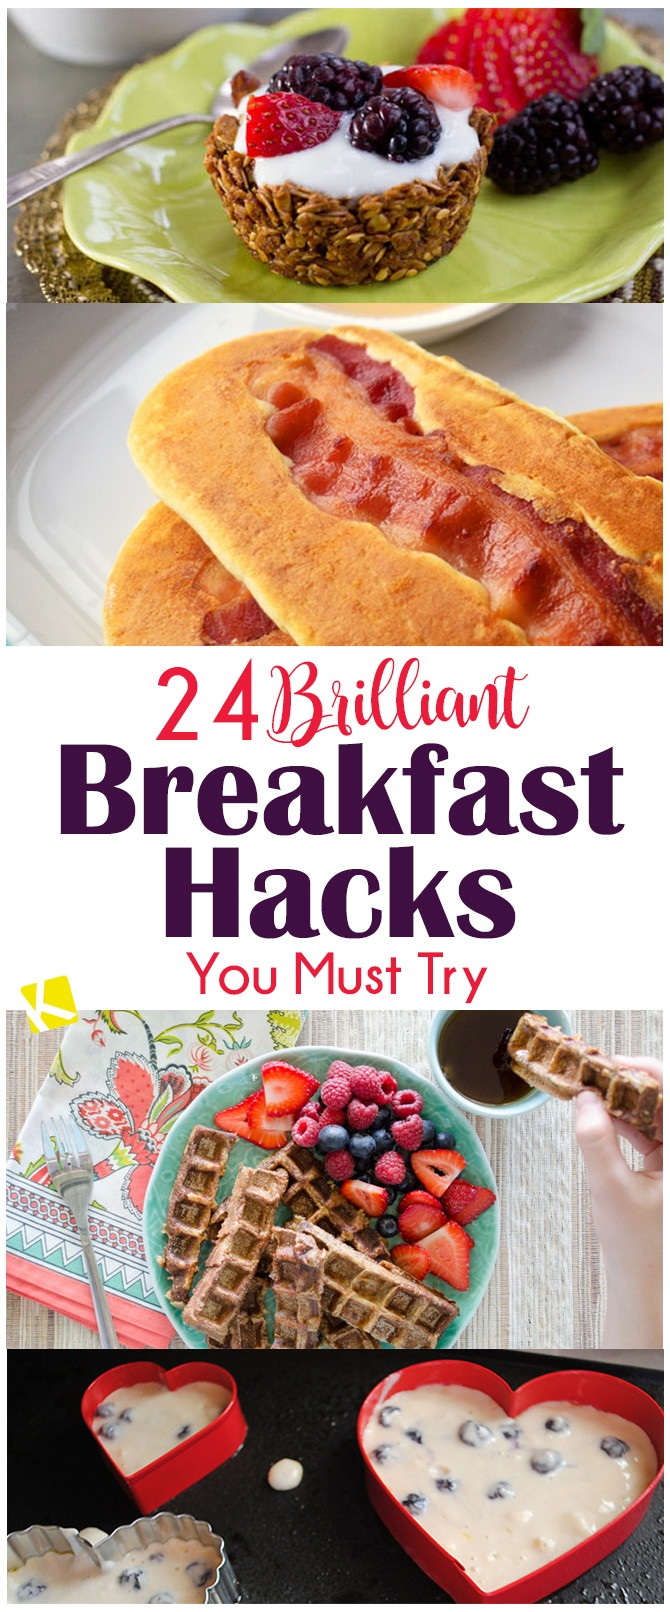 24 Brilliant Breakfast Hacks You Must Try